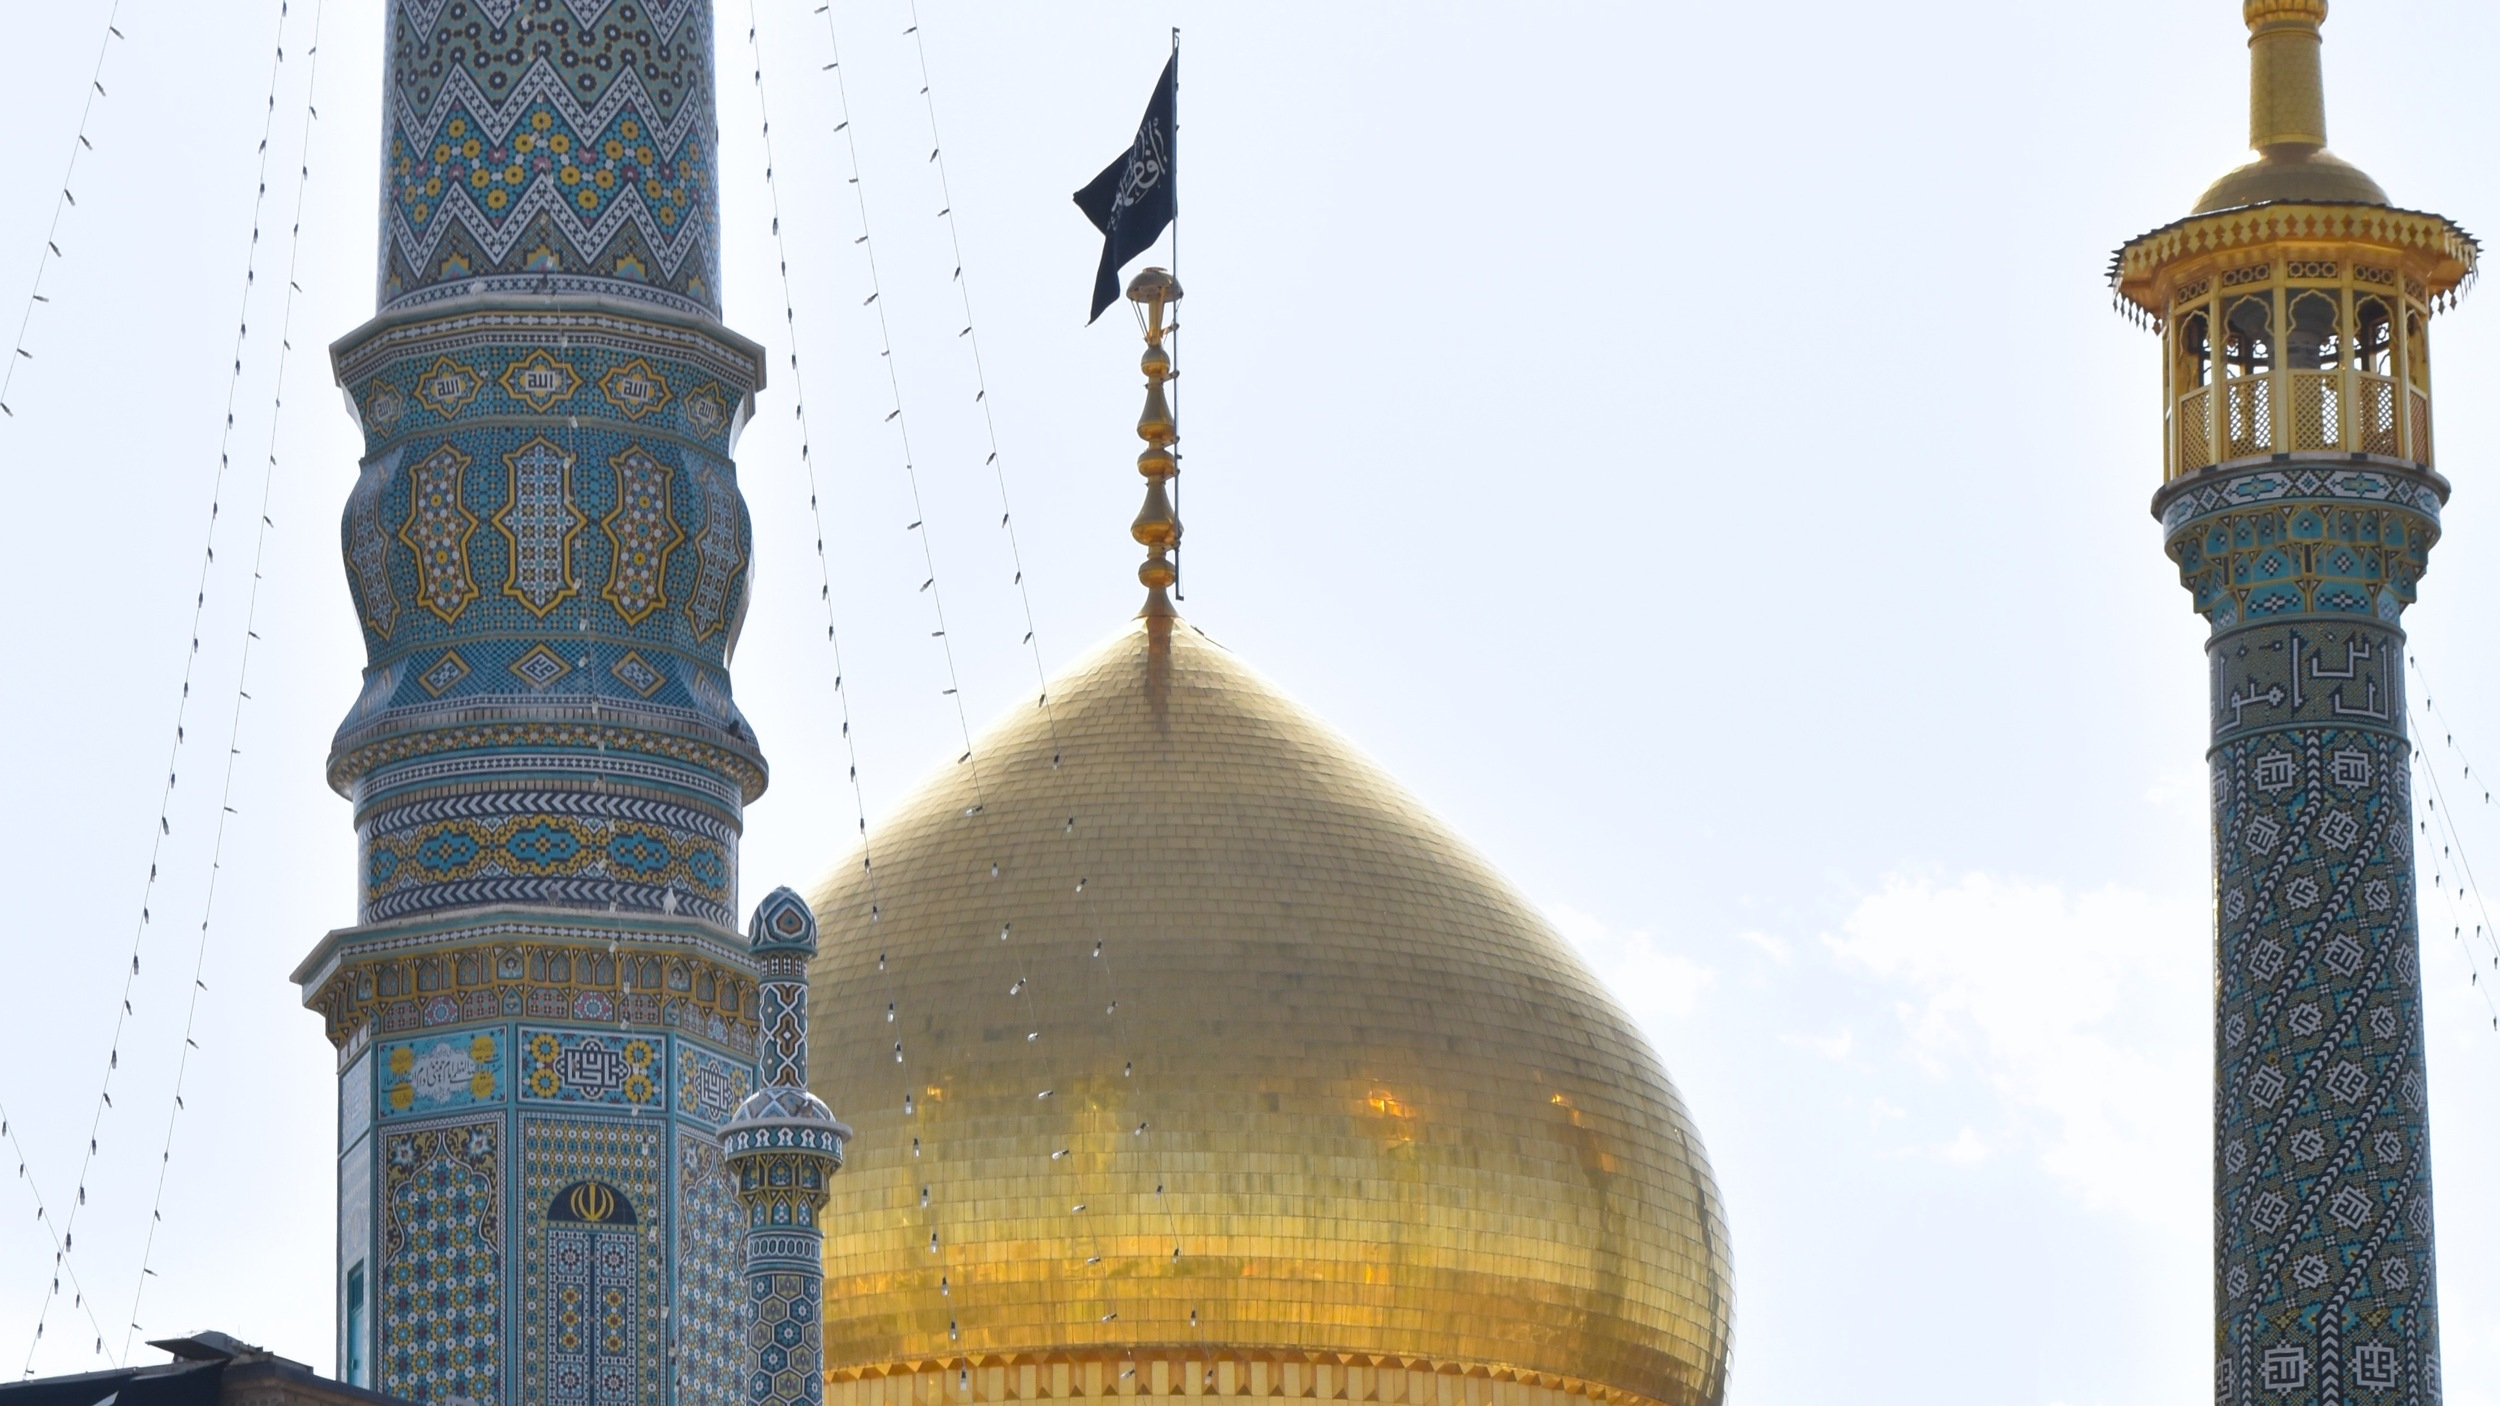 Iran-Qom-Fatima-Masumeh-mosque-gold-dome